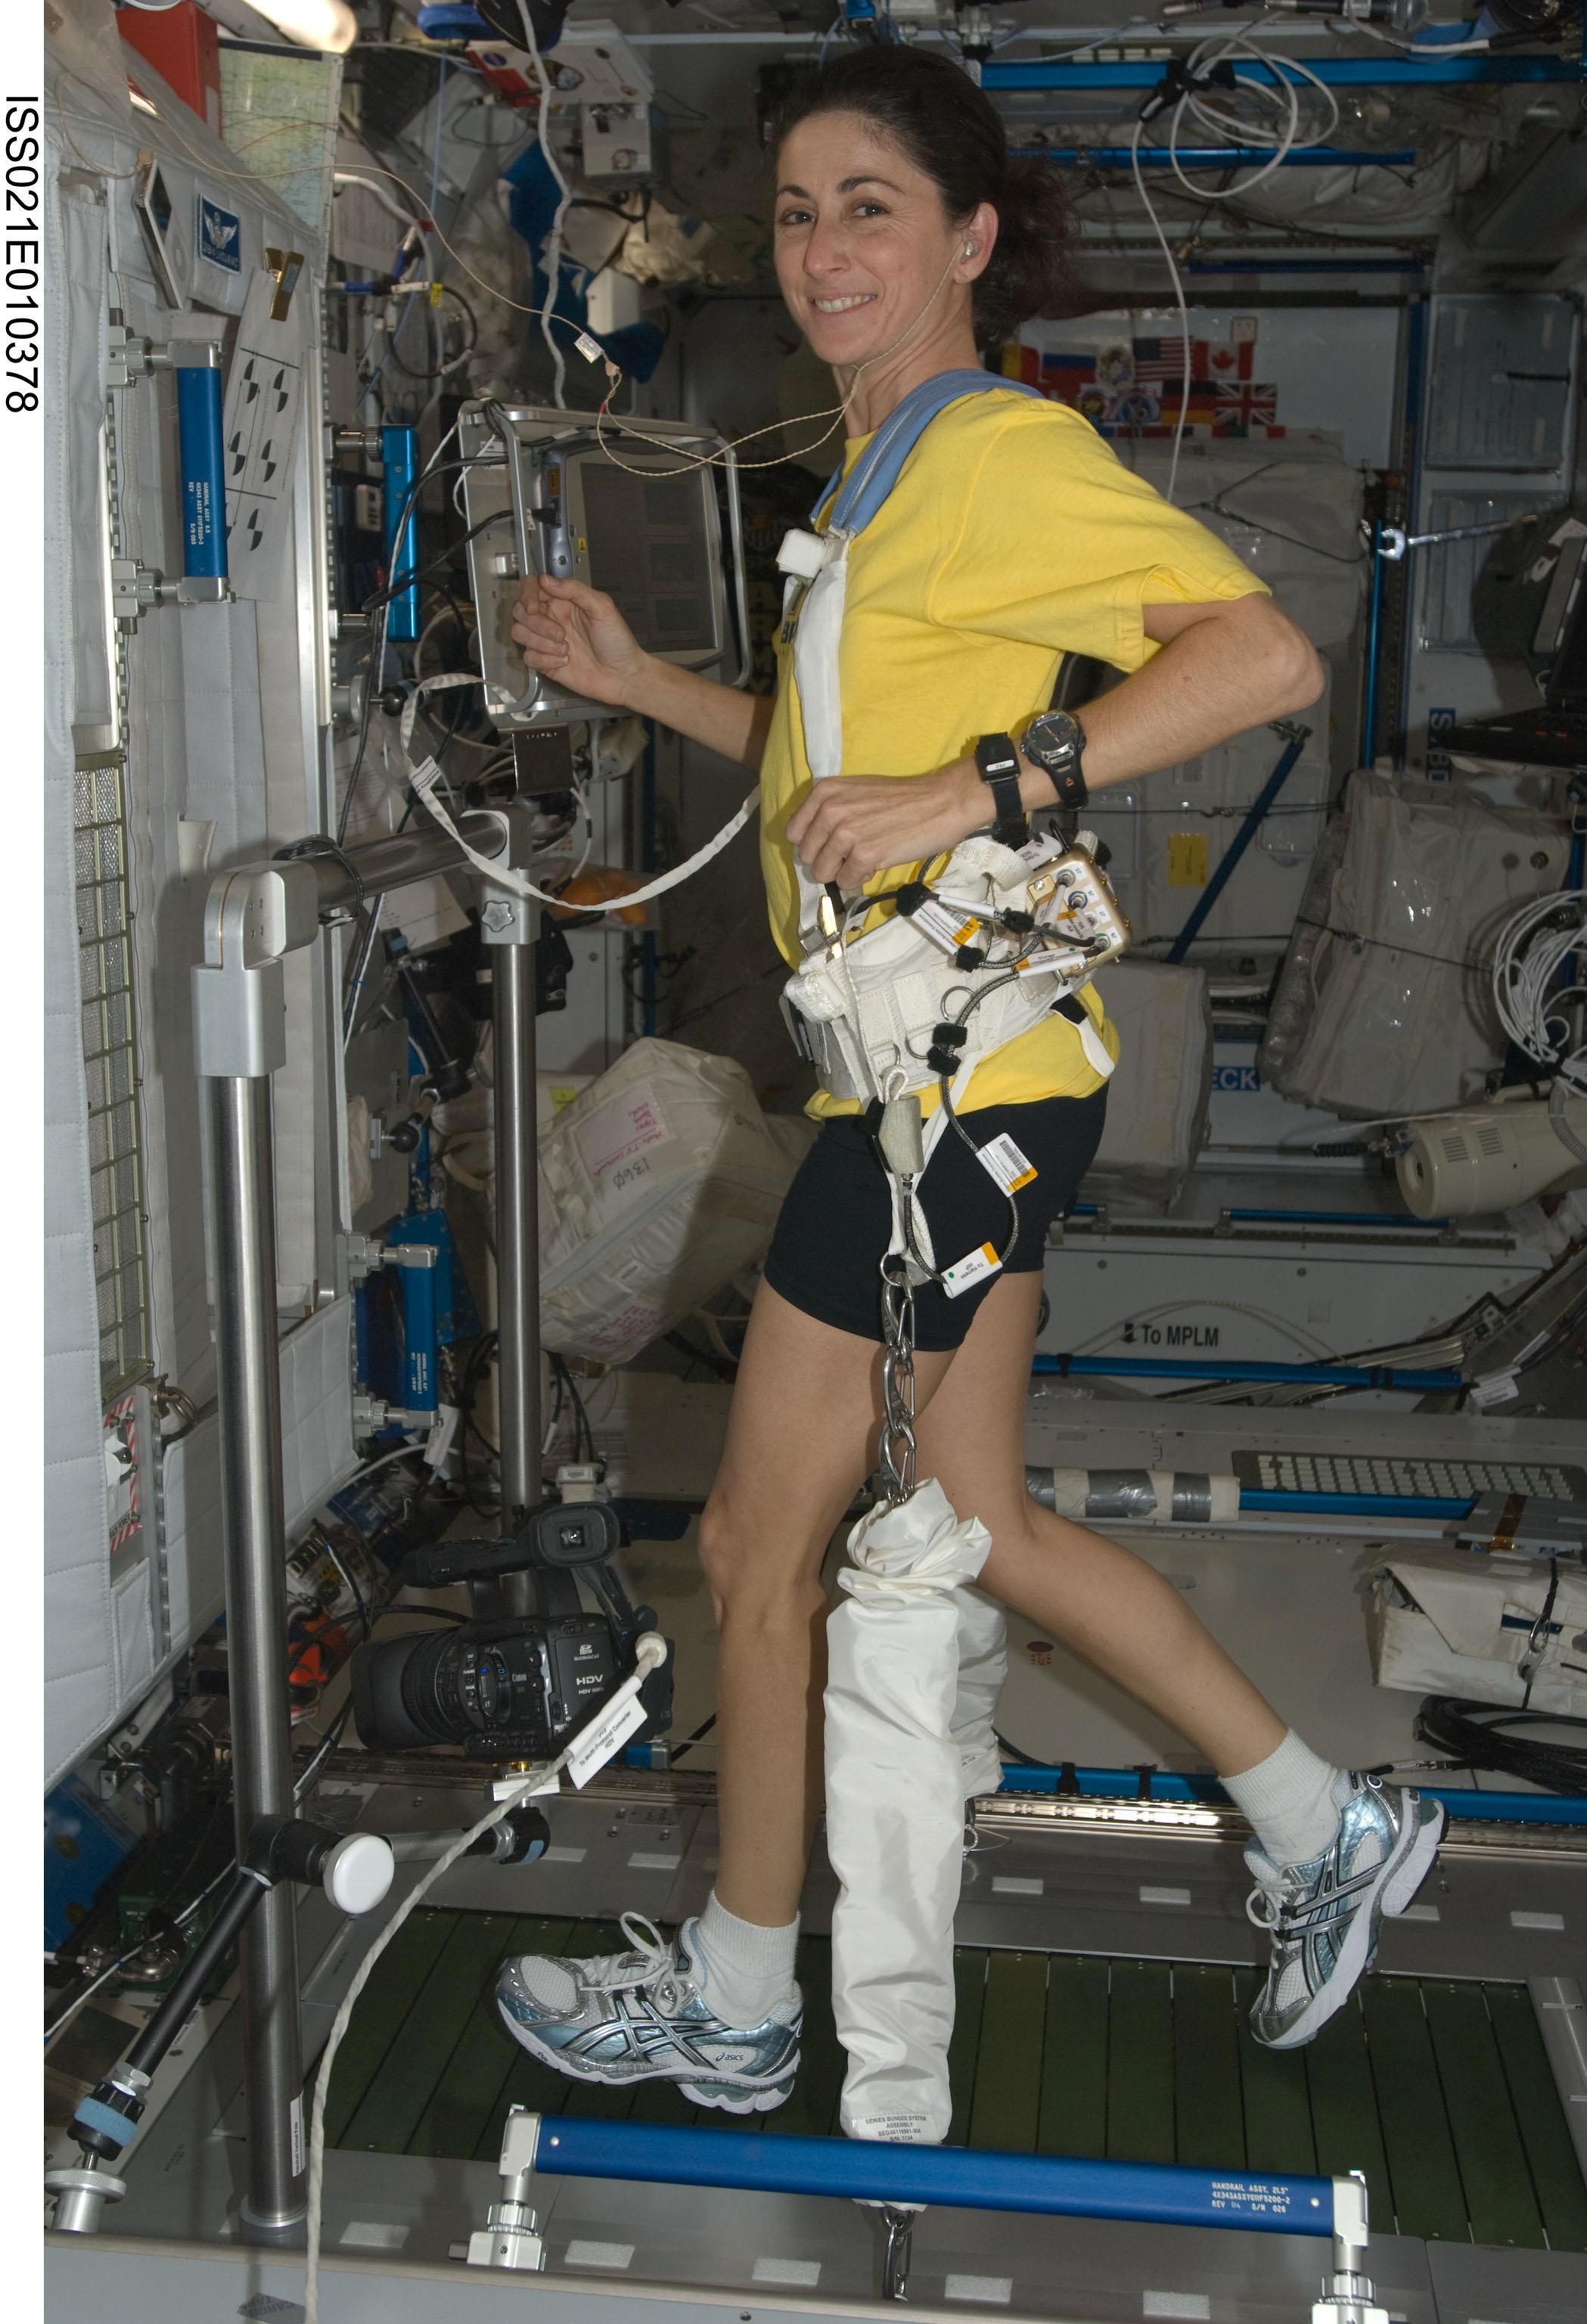 NASA - Biomechanical Analysis of Treadmill Exercise on the ...